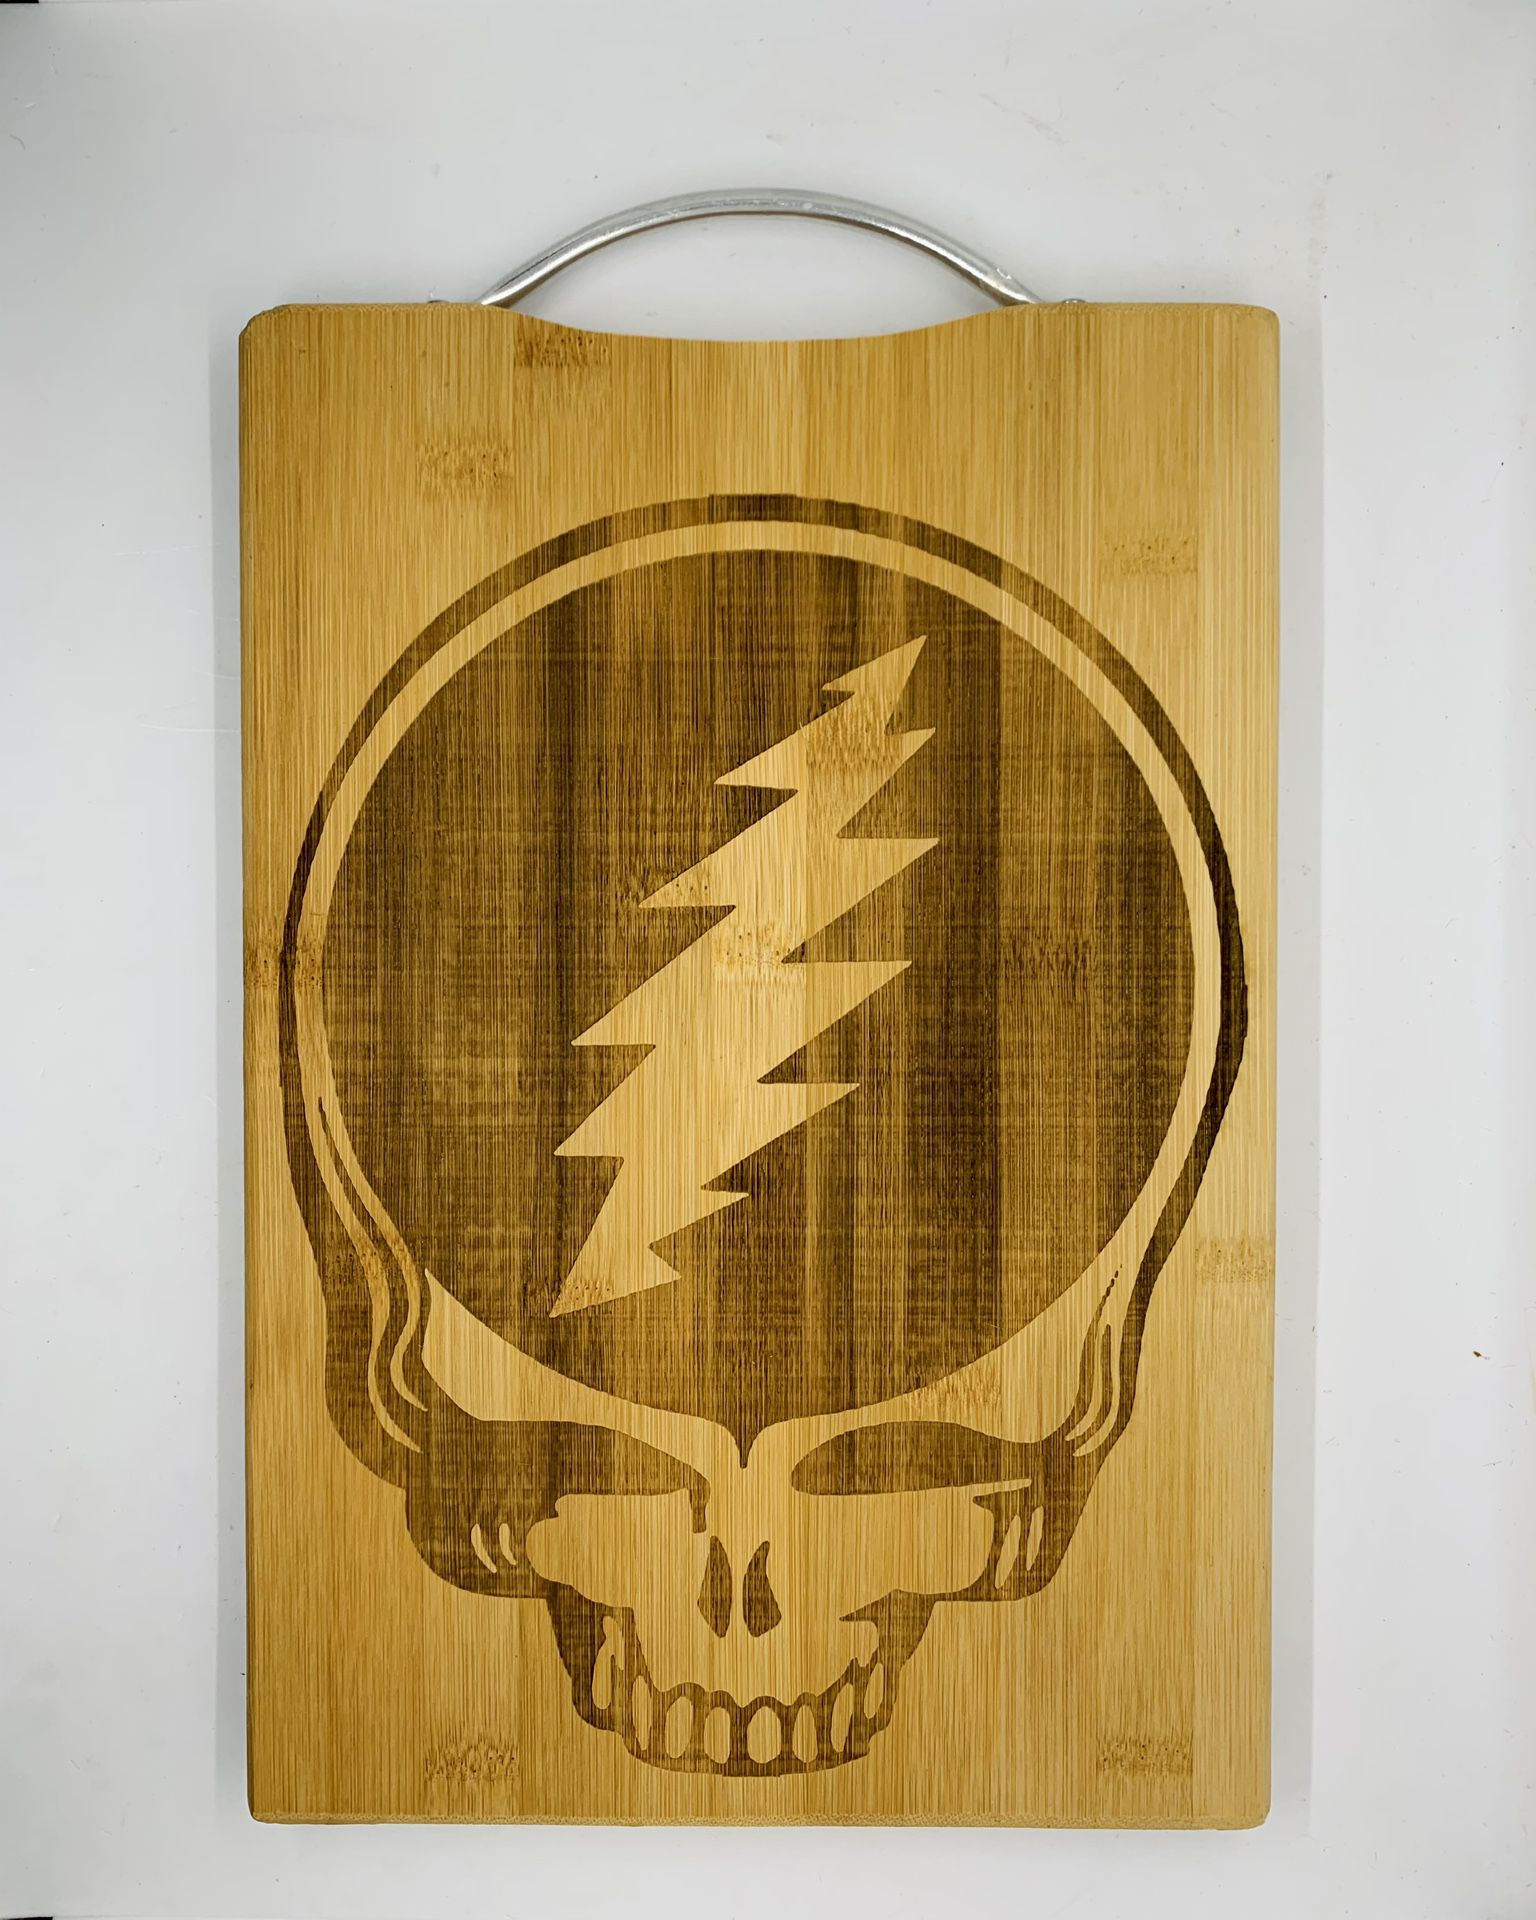 Grateful dead skull laser engraved bamboo high quality cuttingboard pop gift